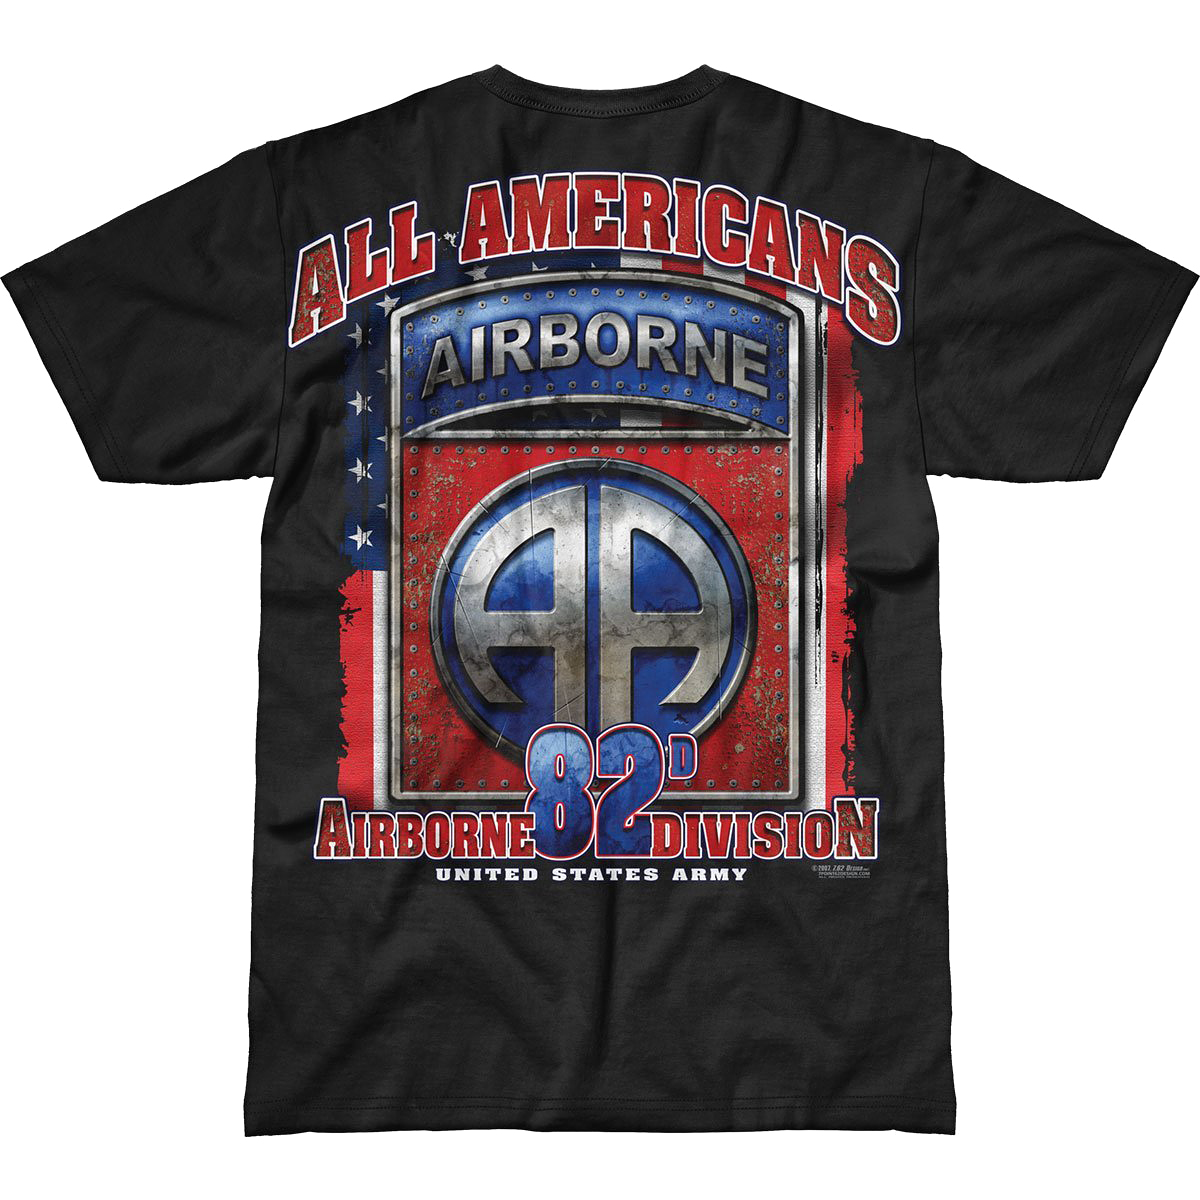 Sentinel 7.62 DESIGN US ARMY 82ND AIRBORNE ALL AMERICANS BATTLESPACE T-SHIRT  MILITARY TOP 2b8867a0a